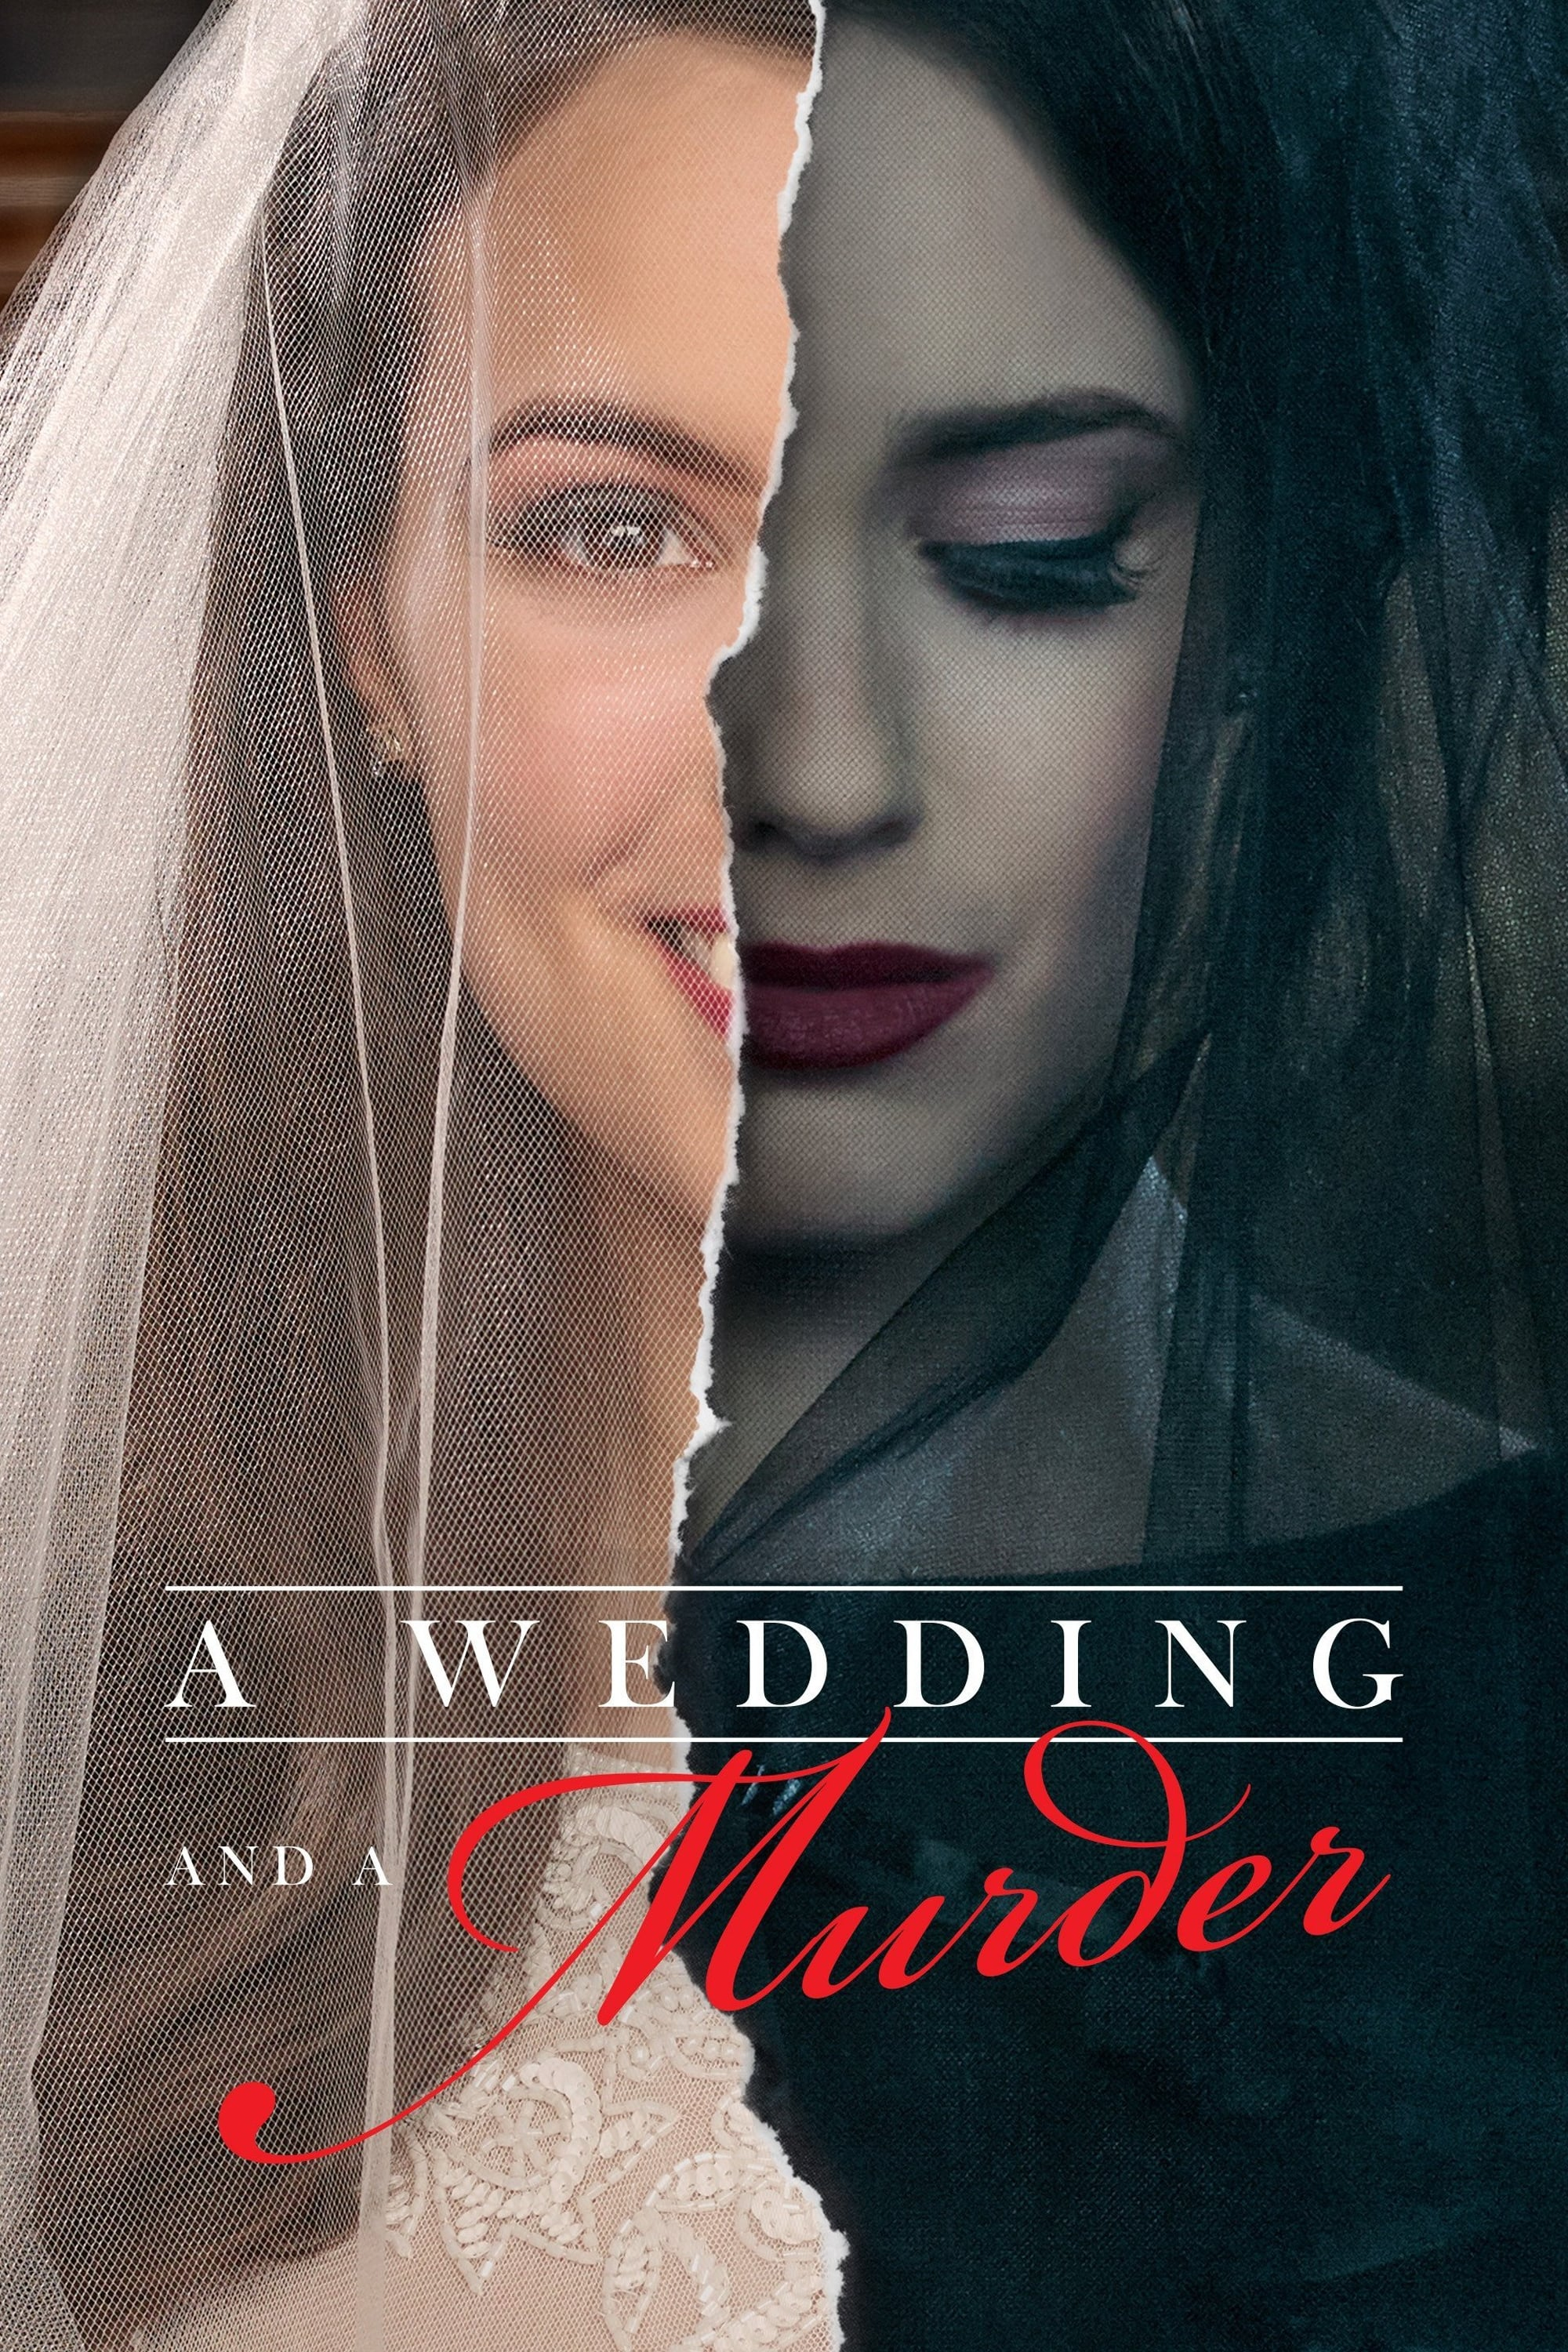 A Wedding and a Murder (2018)